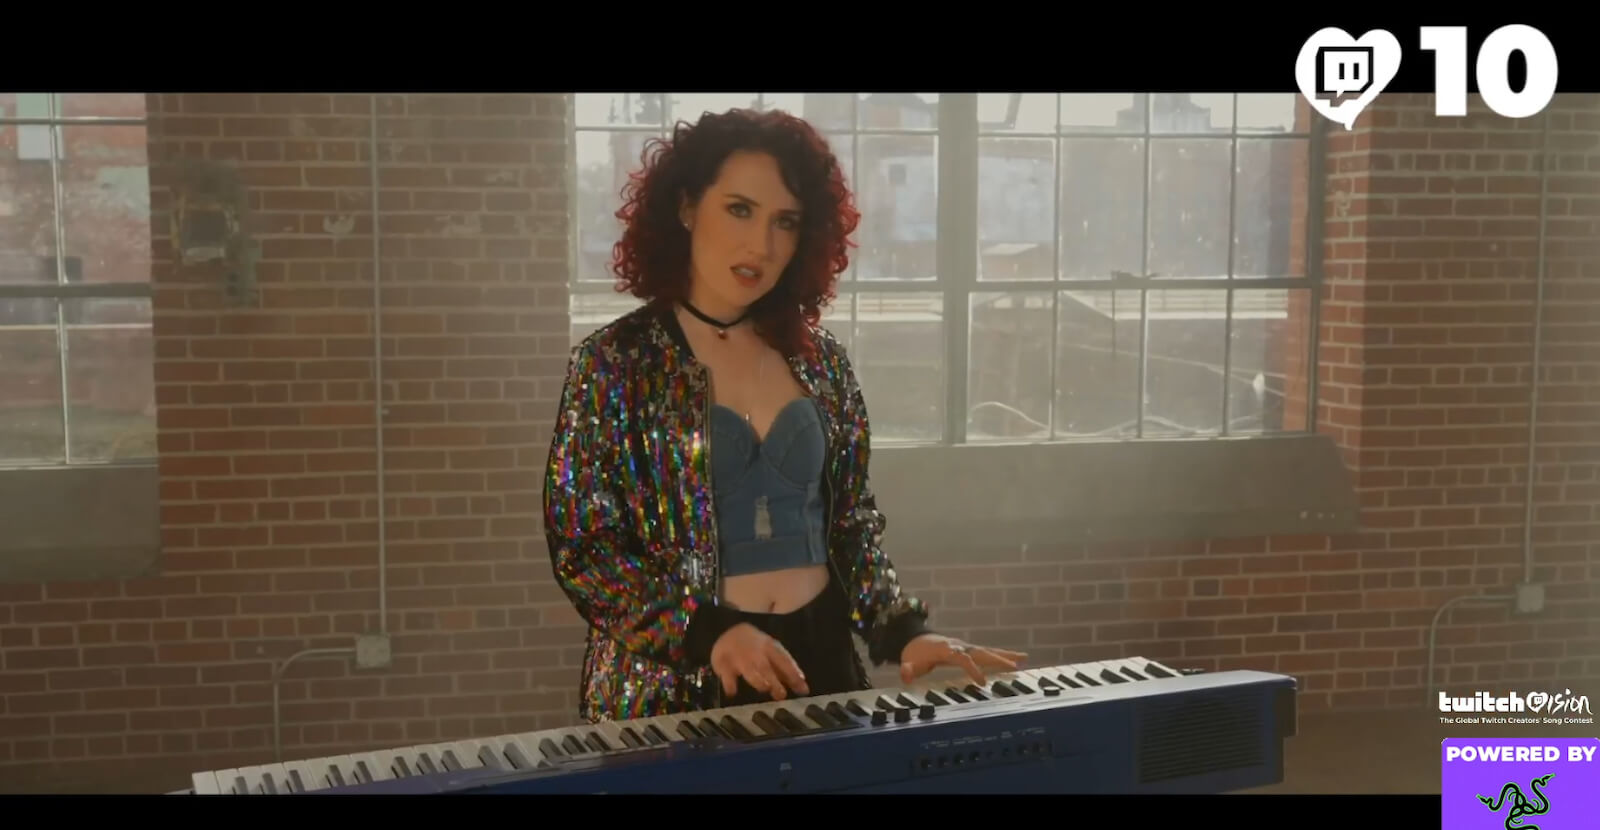 Screenshot from the TwitchVision live-stream showing a creator video. A person with shoulder-length red curly hair and wearing a sparkly colourful jacket is standing behind a keyboard and looking straight at the camera. Behind them is a red brick wall with dirty windows looking a bit like a warehouse.